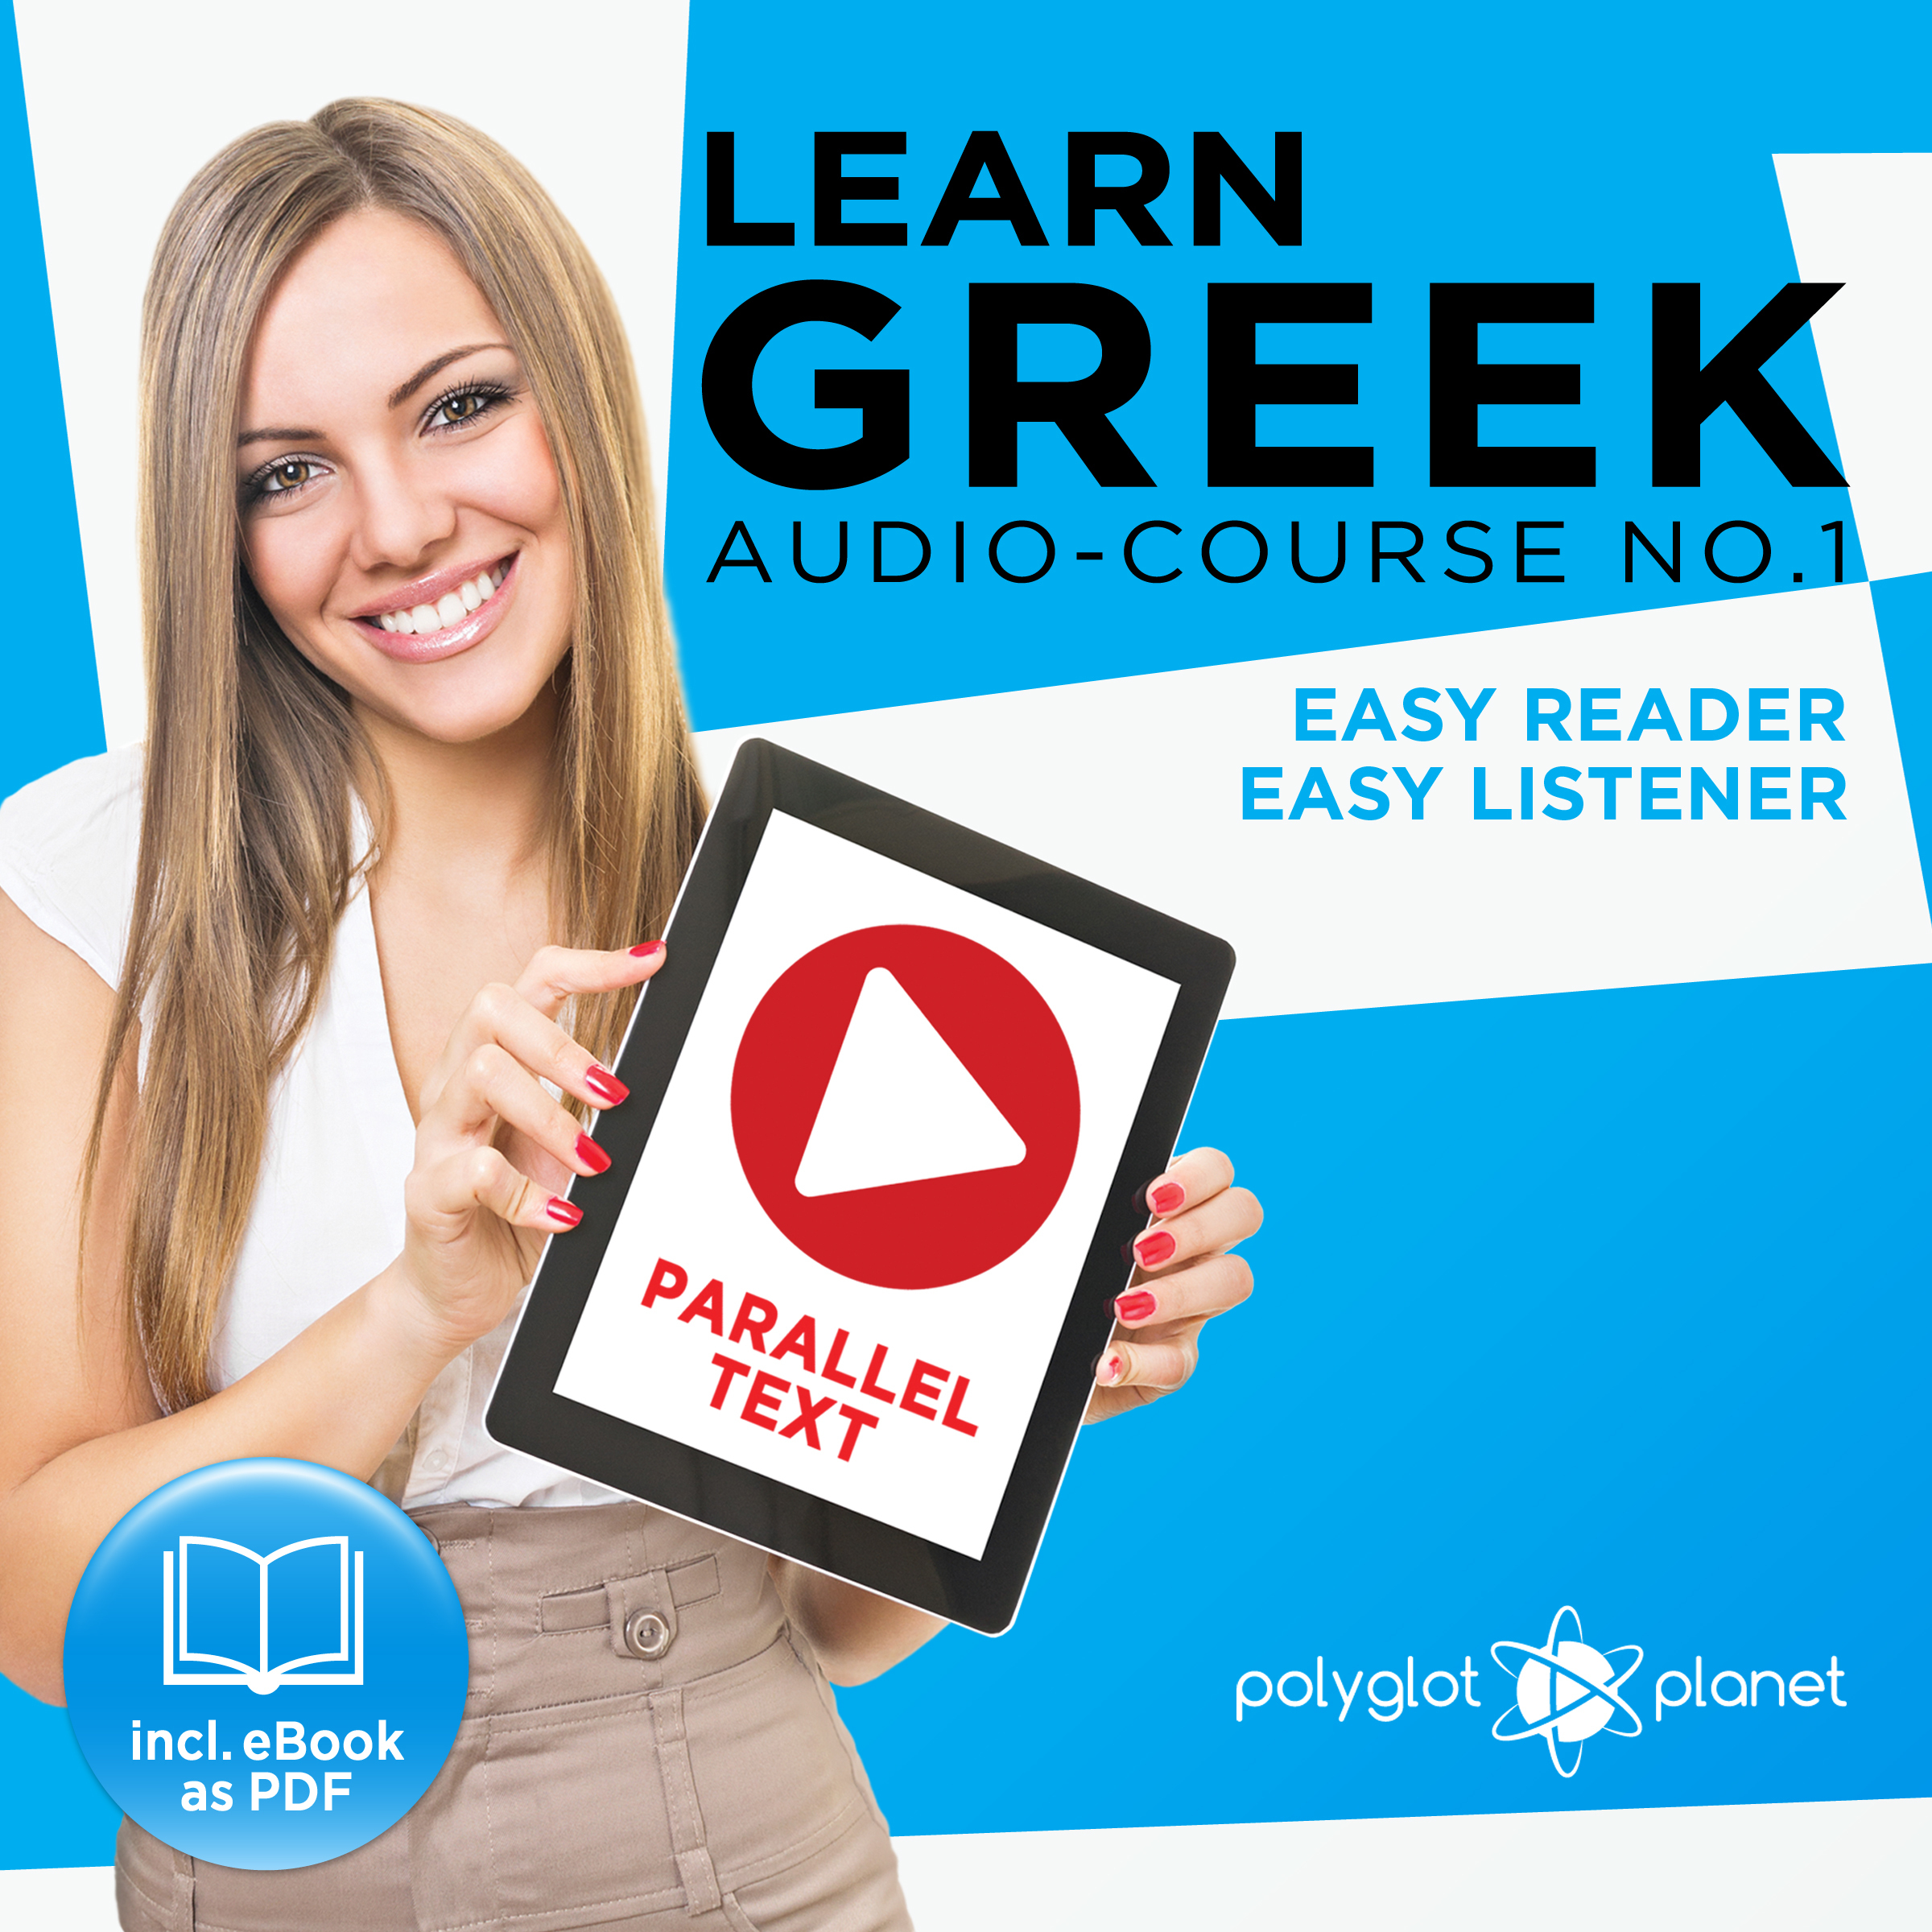 Printable Learn Greek - Easy Reader - Easy Listener Parallel Text Audio Course No. 1 - The Greek Easy Reader - Easy Audio Learning Course Audiobook Cover Art